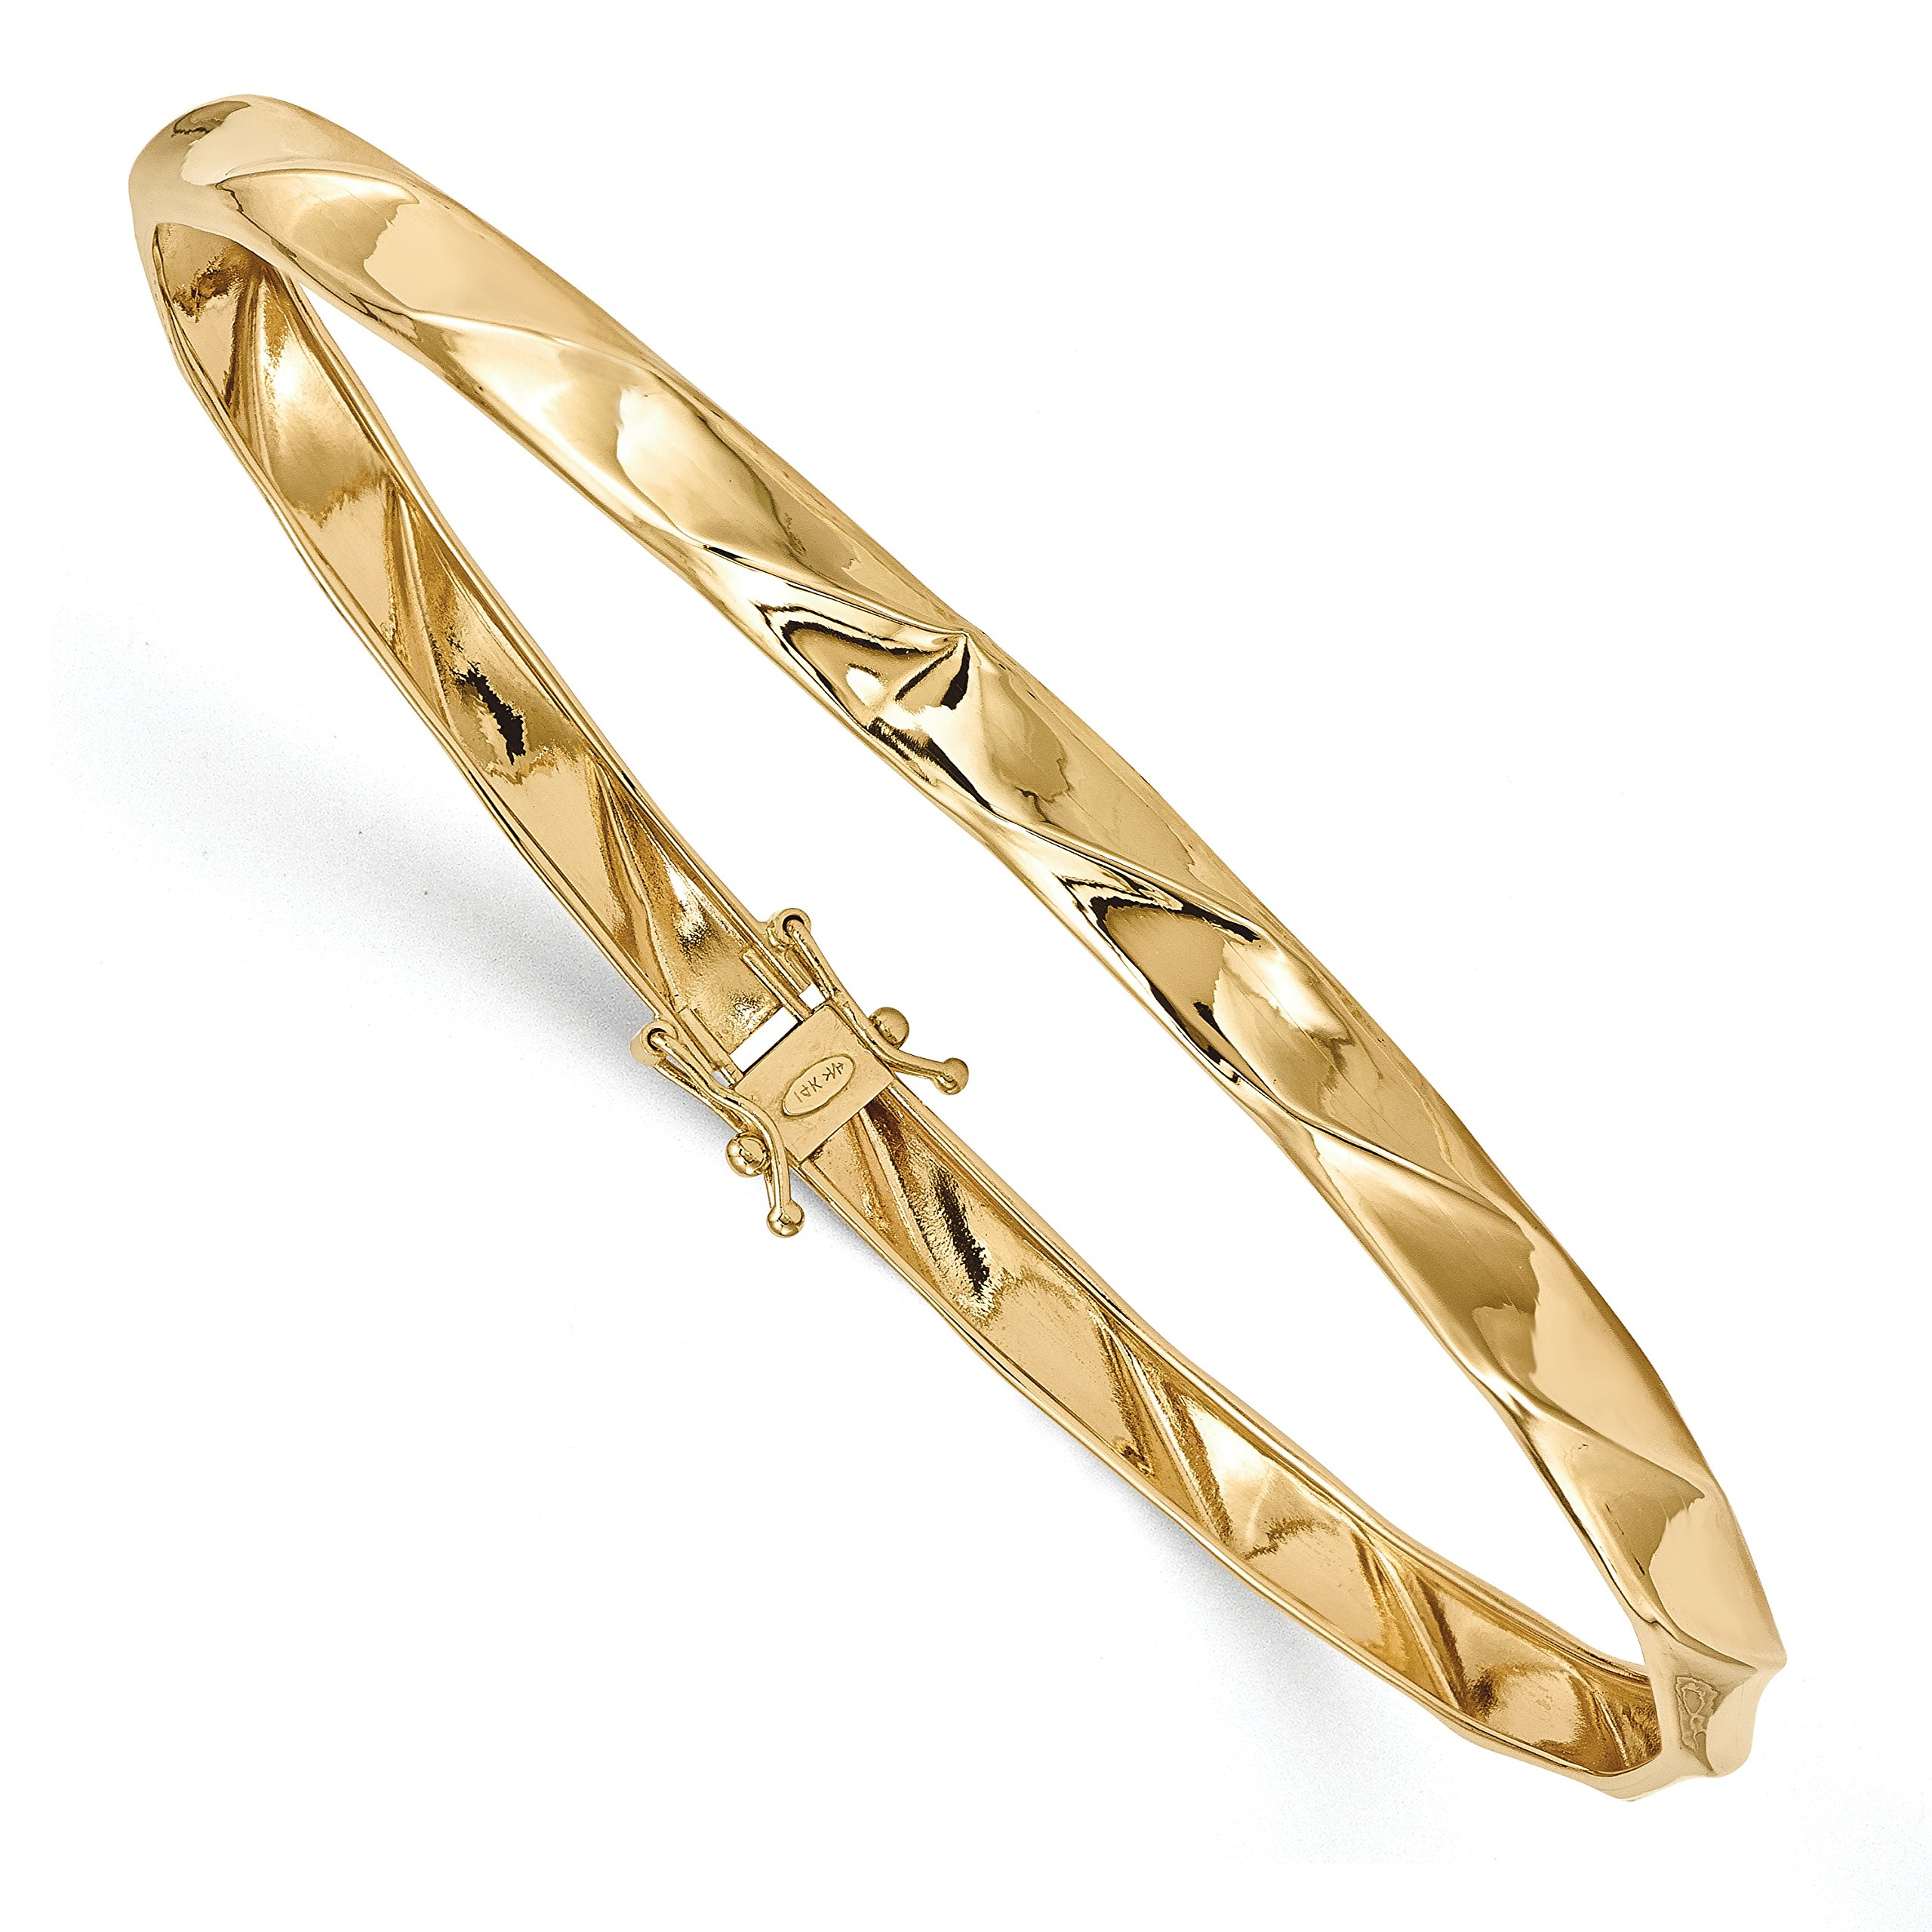 ICE CARATS 14k Yellow Gold Twisted Bangle Bracelet Cuff Expandable Stackable Hinged Fine Jewelry Gift Set For Women Heart